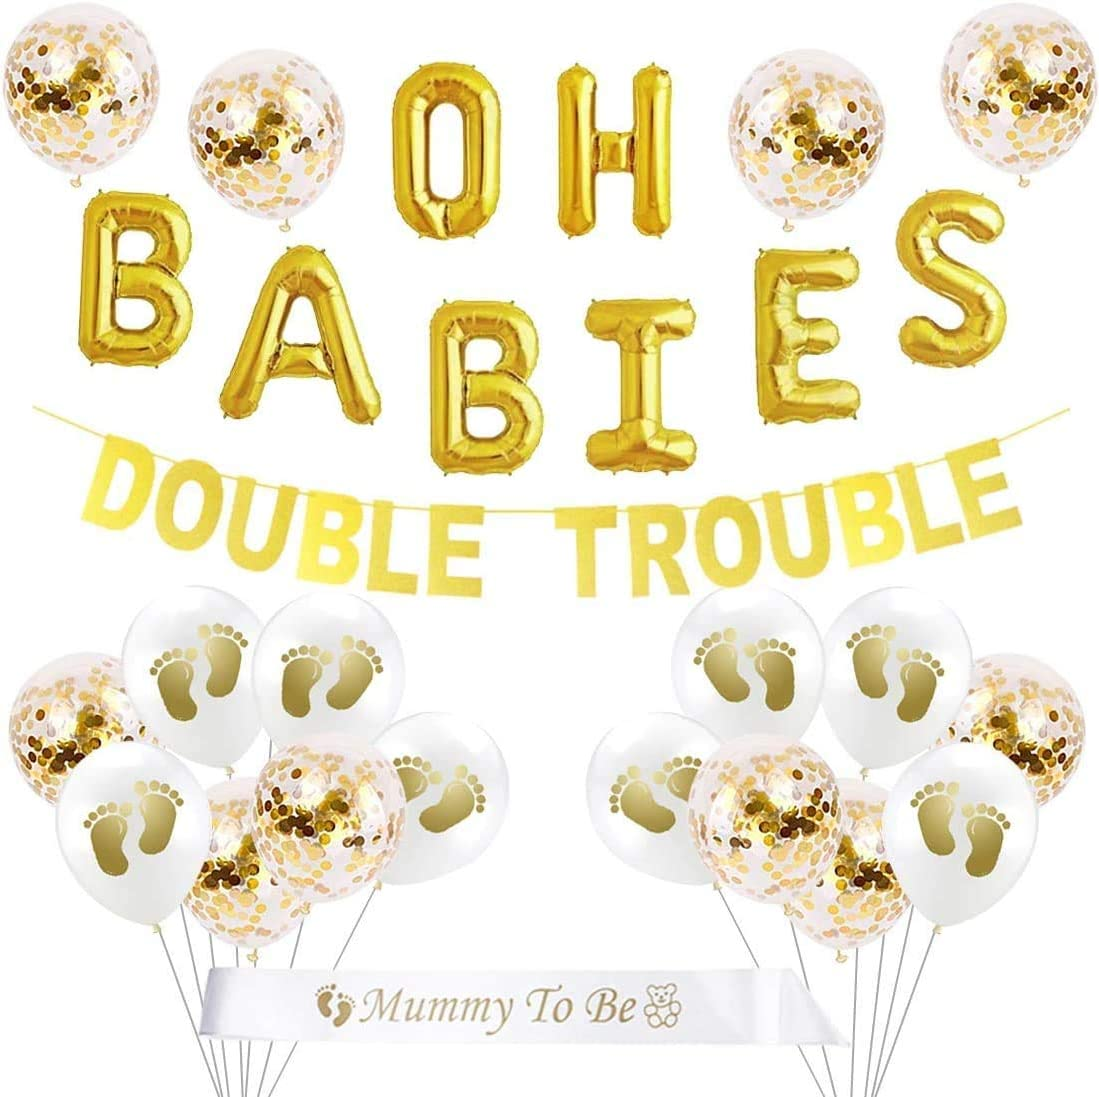 Twins Baby Shower Decorations Set Gold Theme, Double Trouble Banner, OH BABIES Balloons, Mummy To Be Sash for Babies Party Supplies